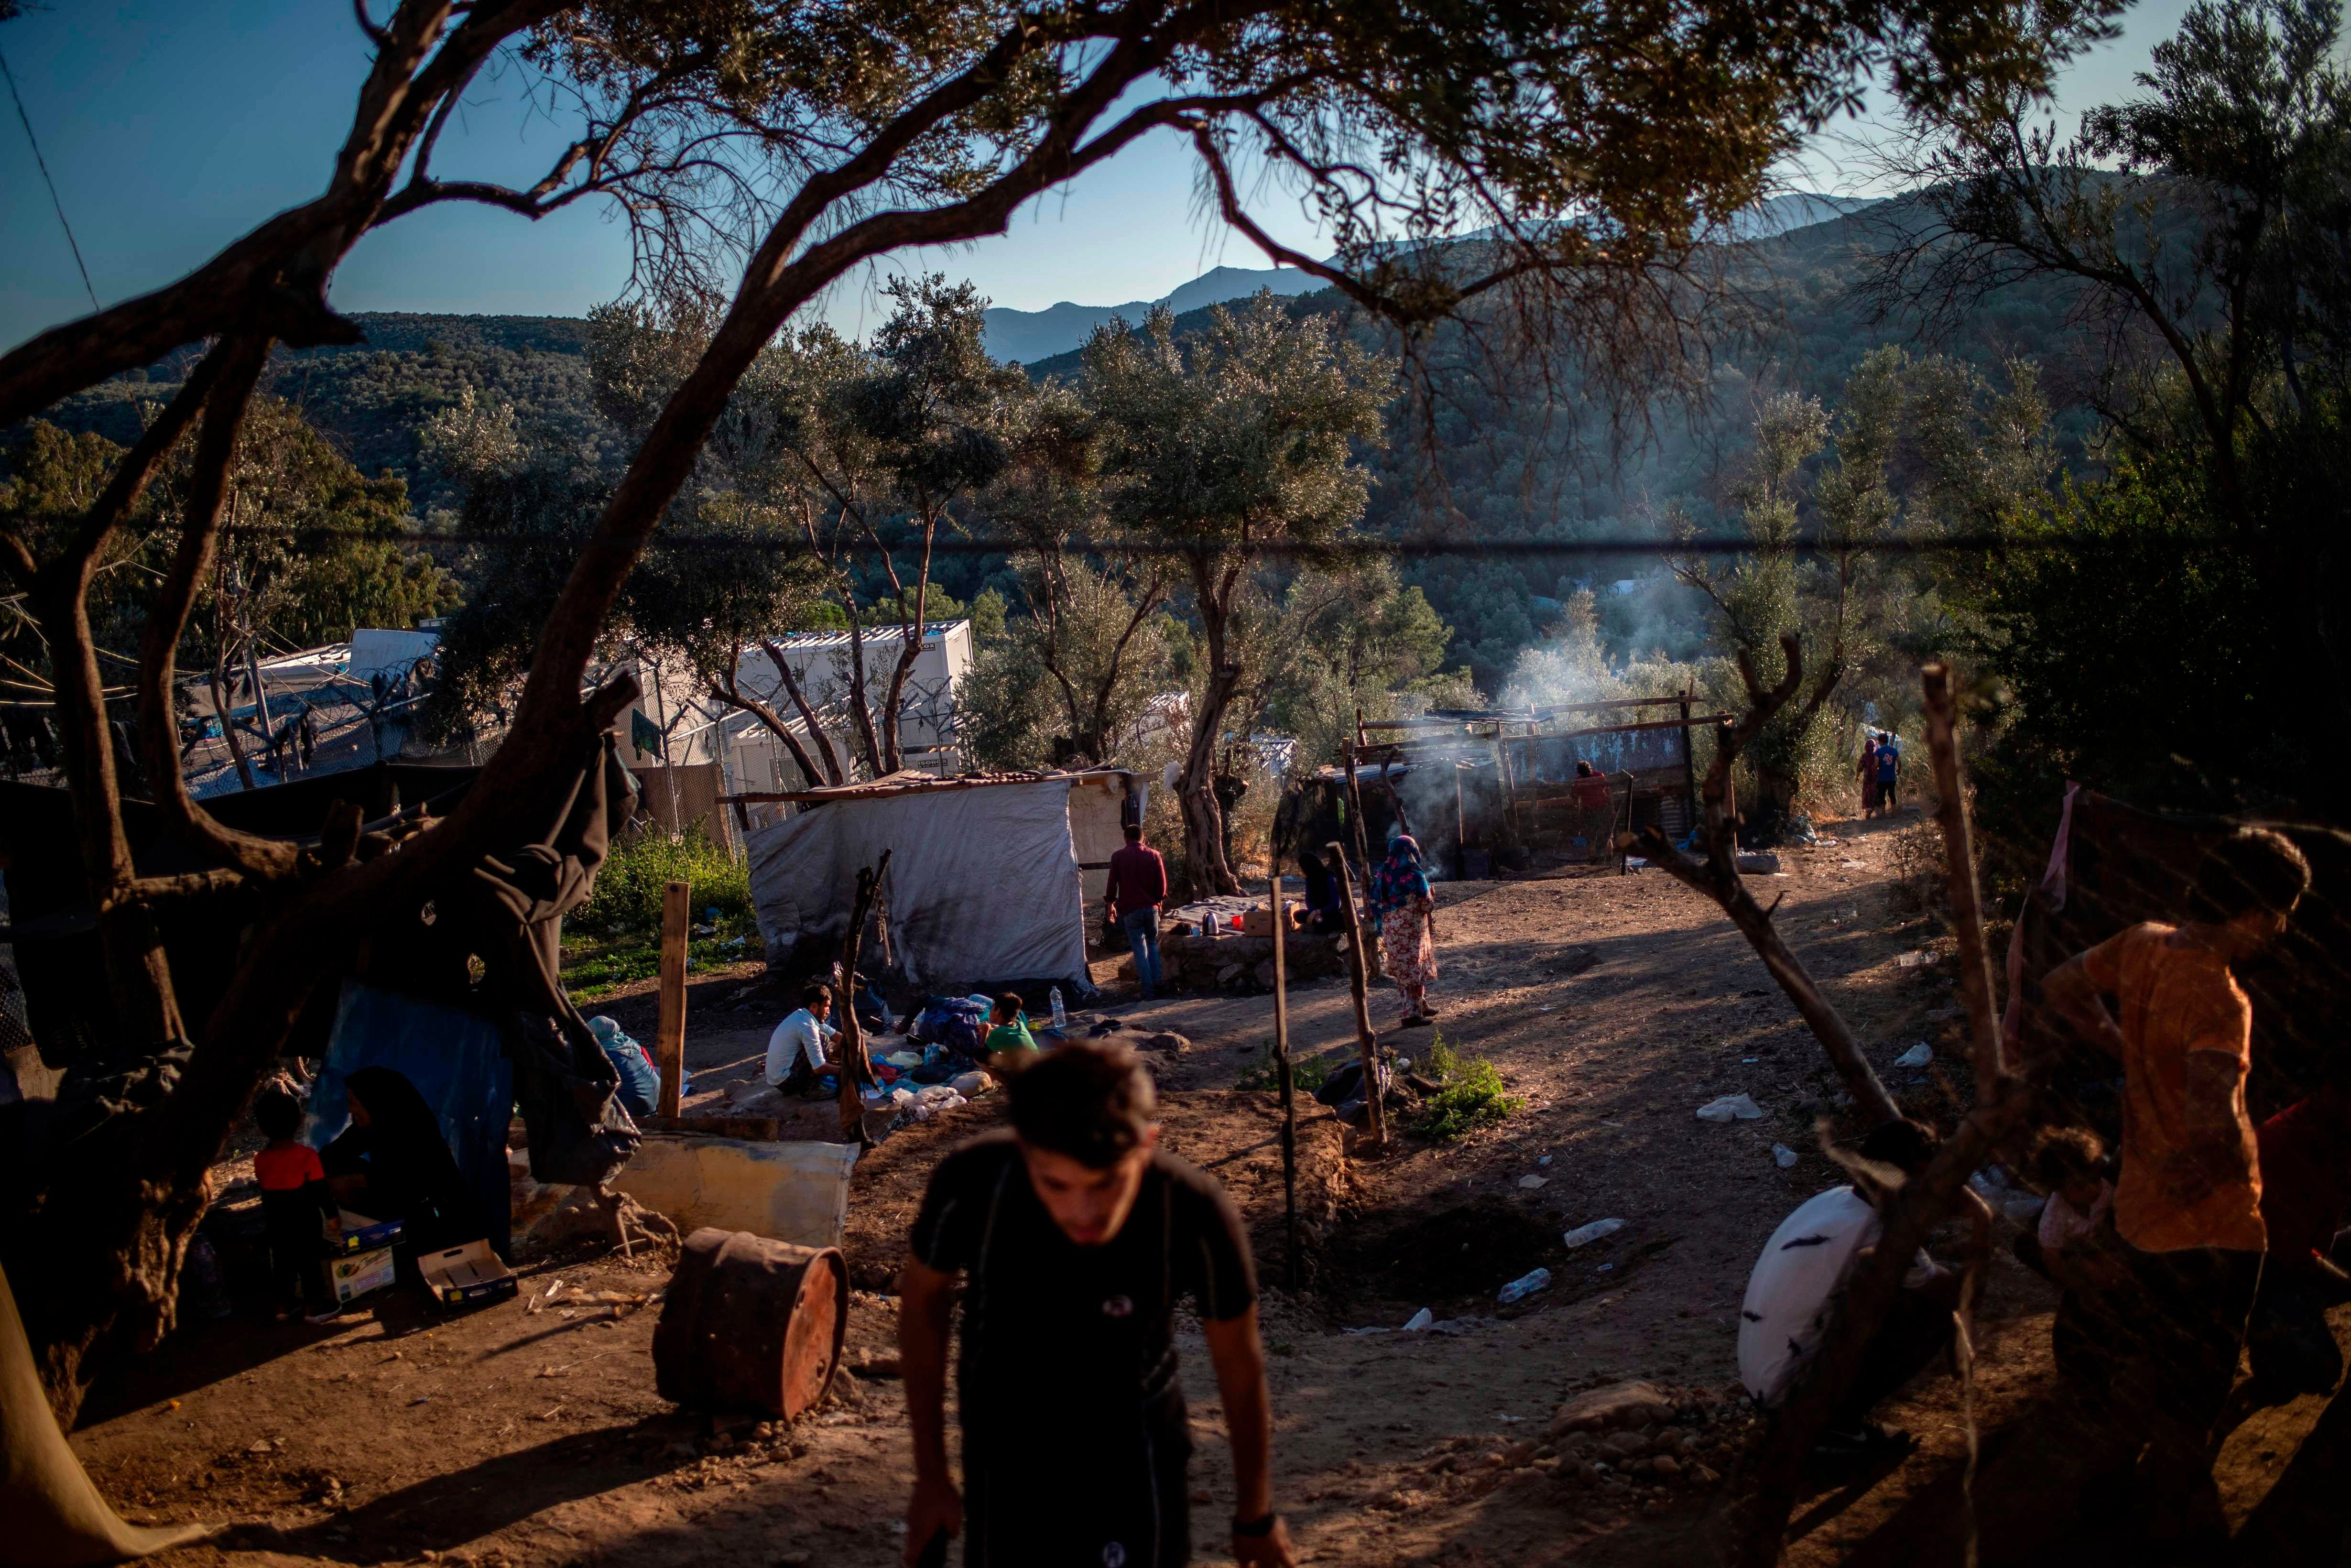 Greece announces steps to shut down notorious refugee